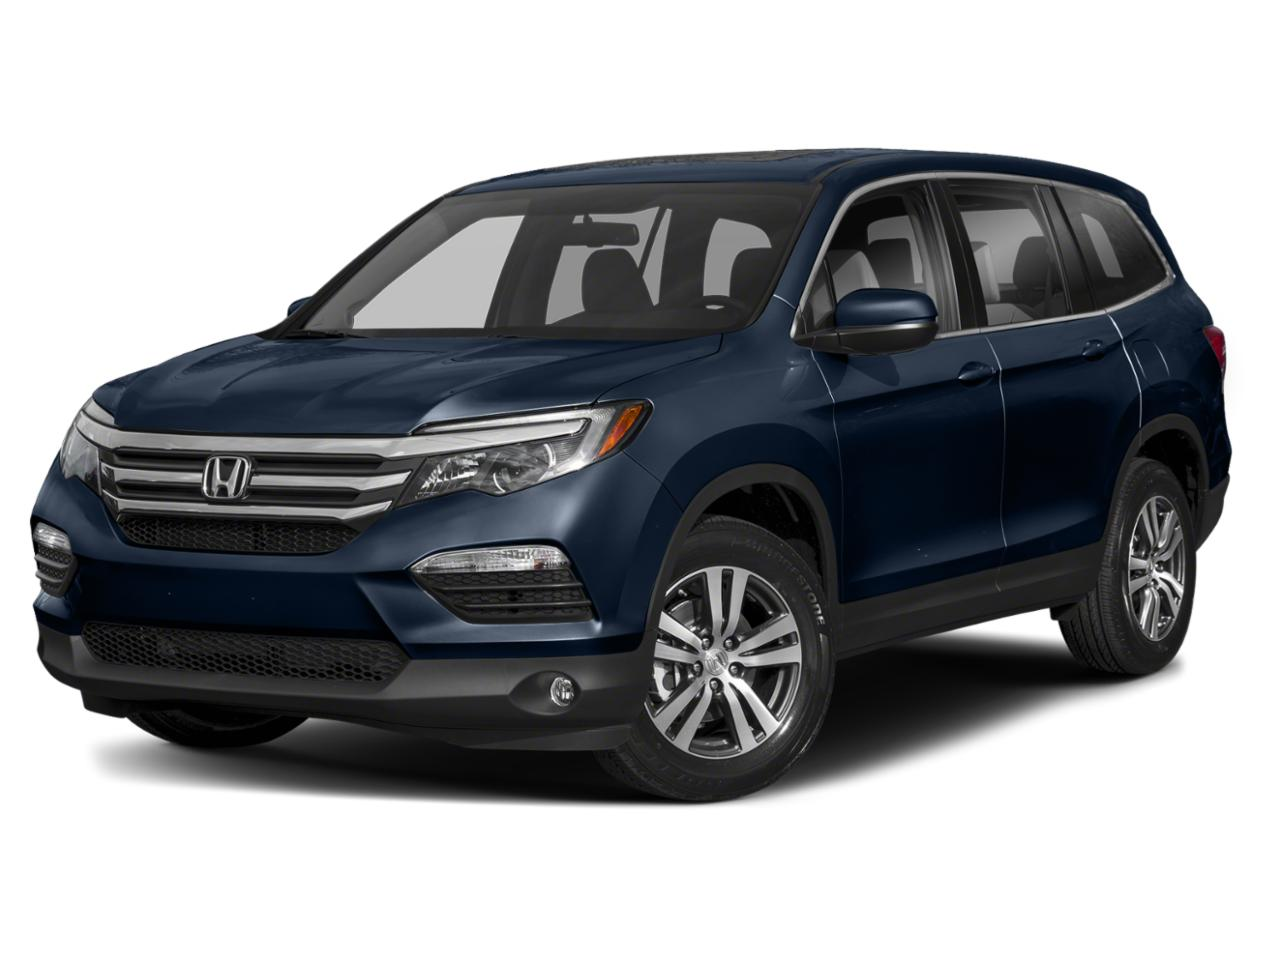 2018 Honda Pilot Vehicle Photo in San Antonio, TX 78238